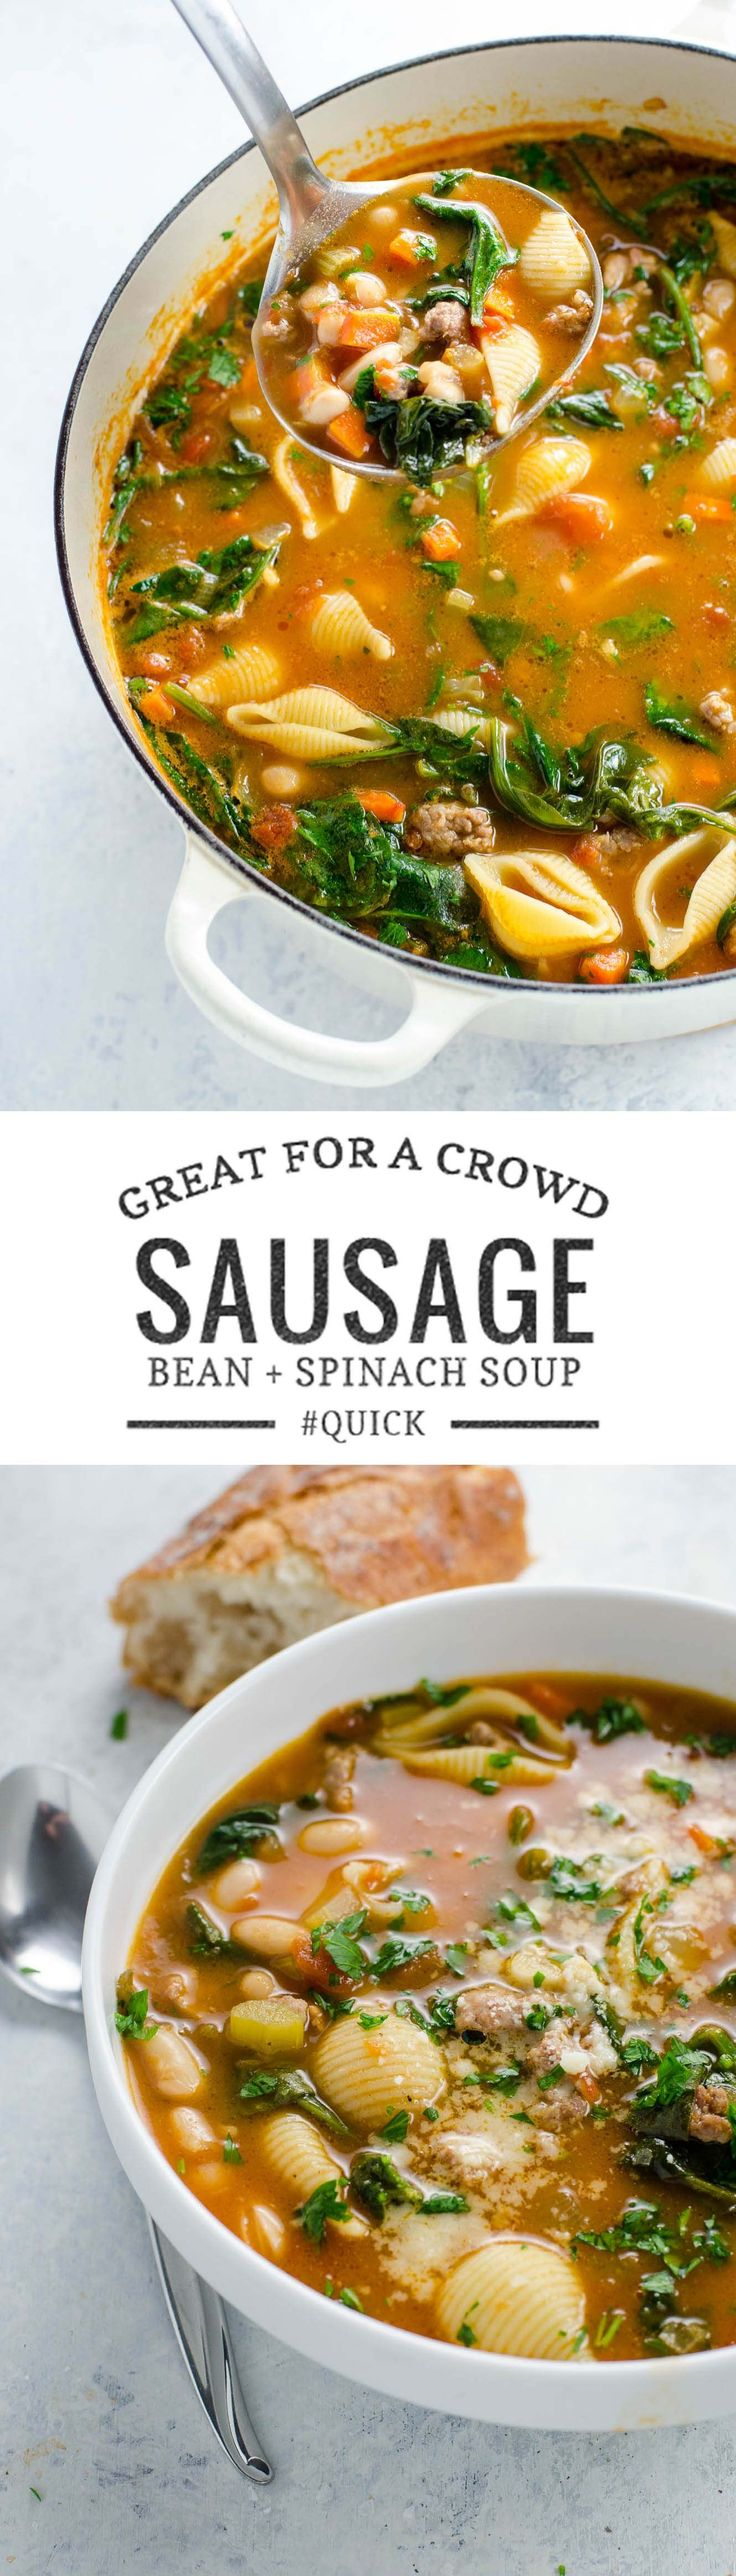 Italian sausage soup with white beans, spinach with pasta shells is quick, easy and great for a crowd. It's hearty and packed with veggies. via @umamigirl